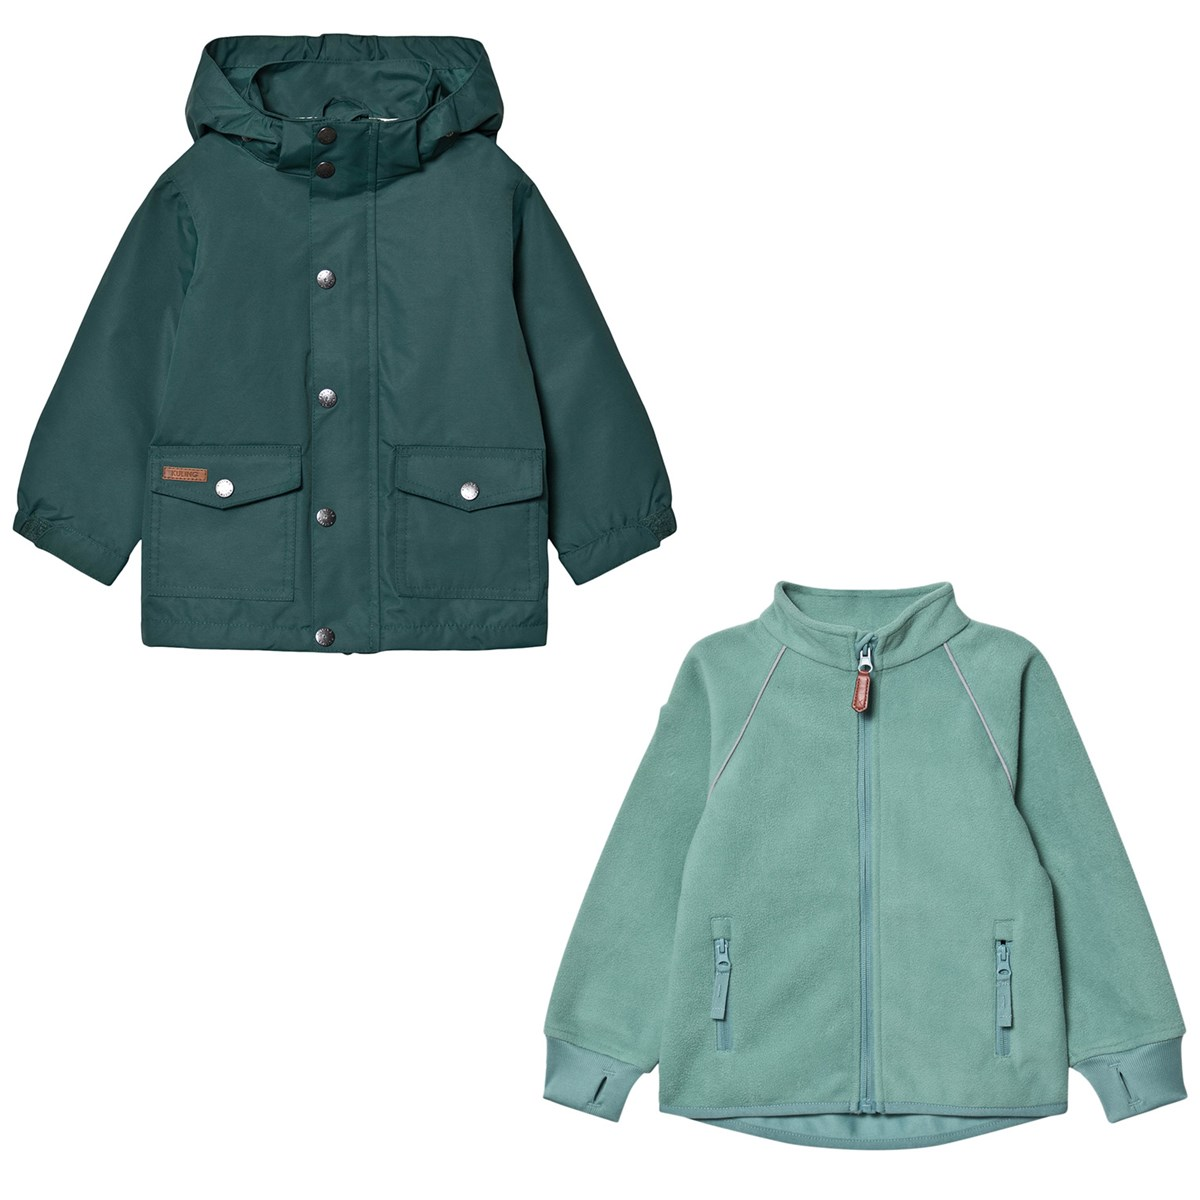 Köp Kuling Shell Jacket and Wind Fleece Jacket Deep Green